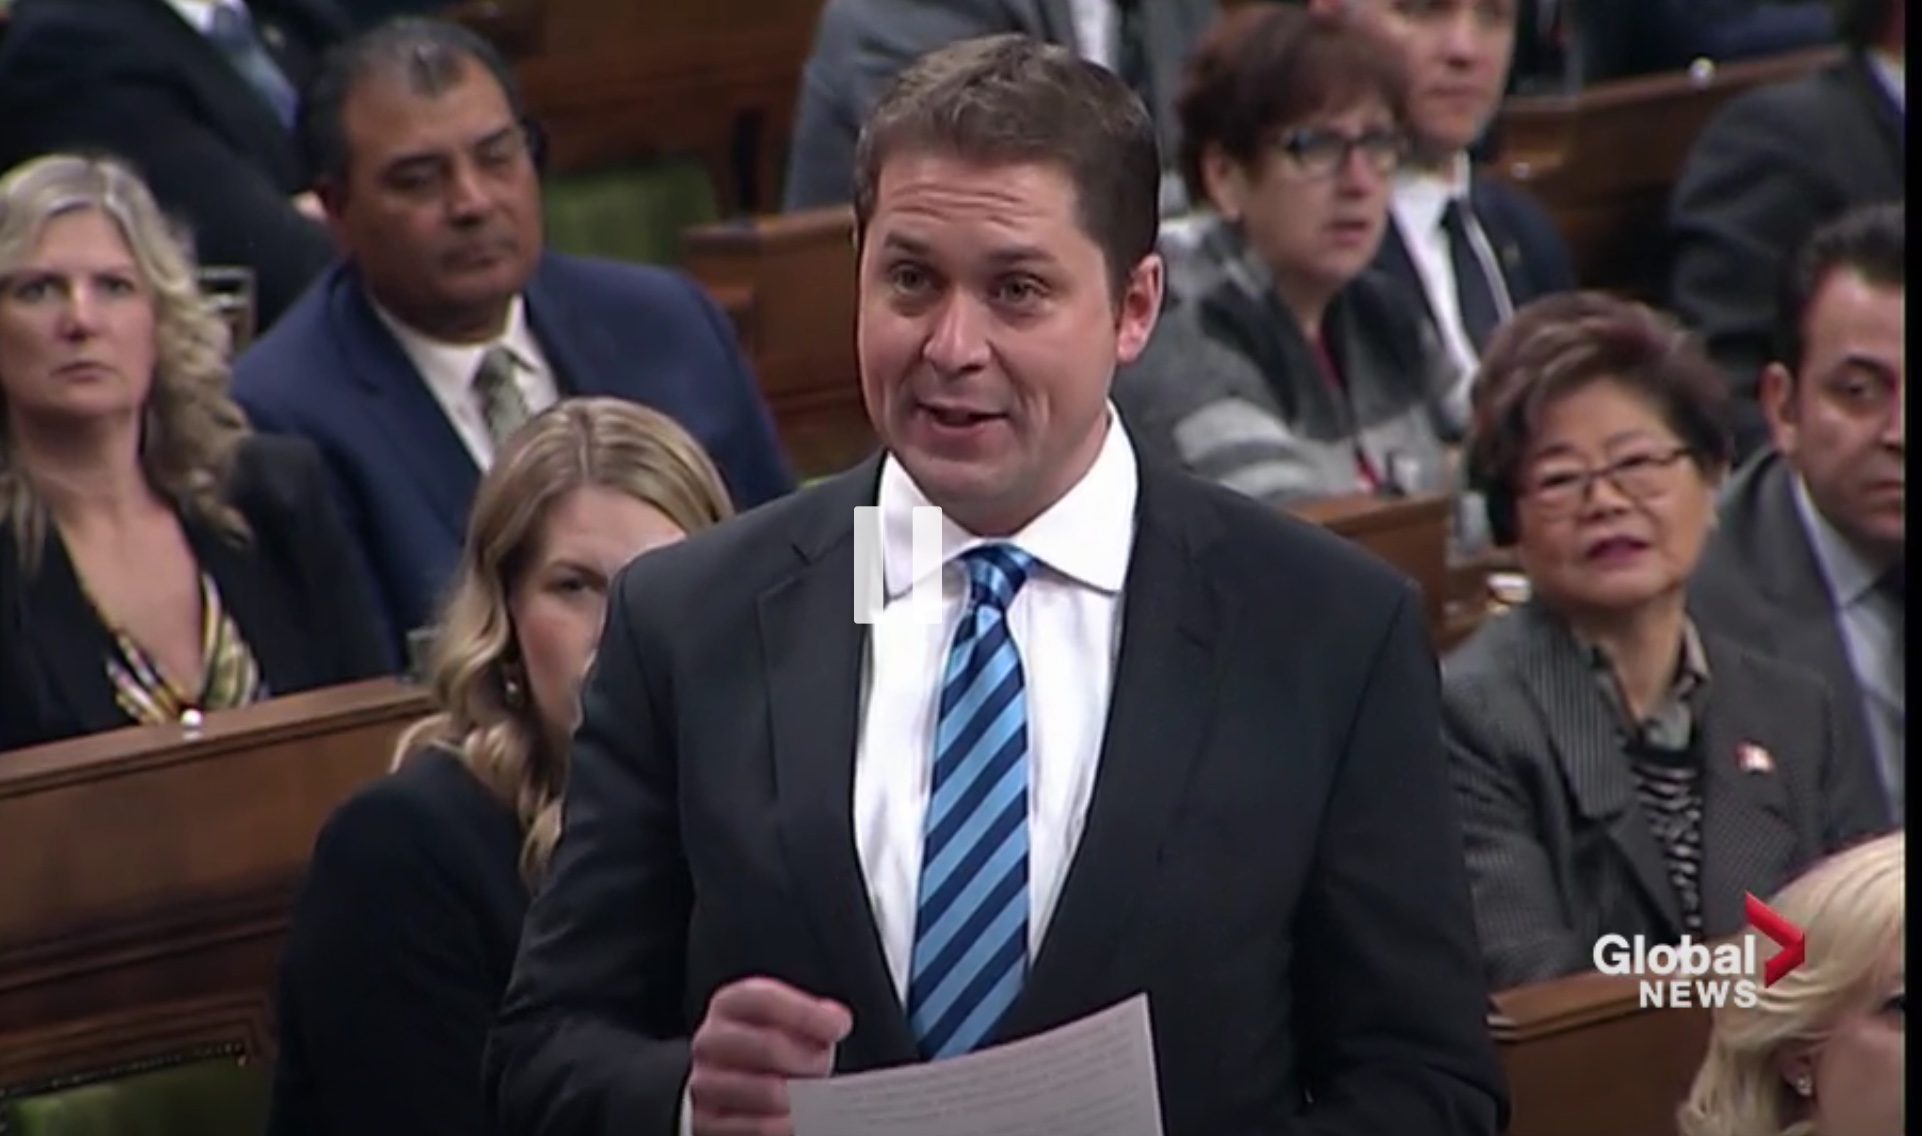 Conservative Leader Andrew Scheer asks questions in the House of Commons, Ottawa, Ont., Dec. 4, 2018. Global News screenshot